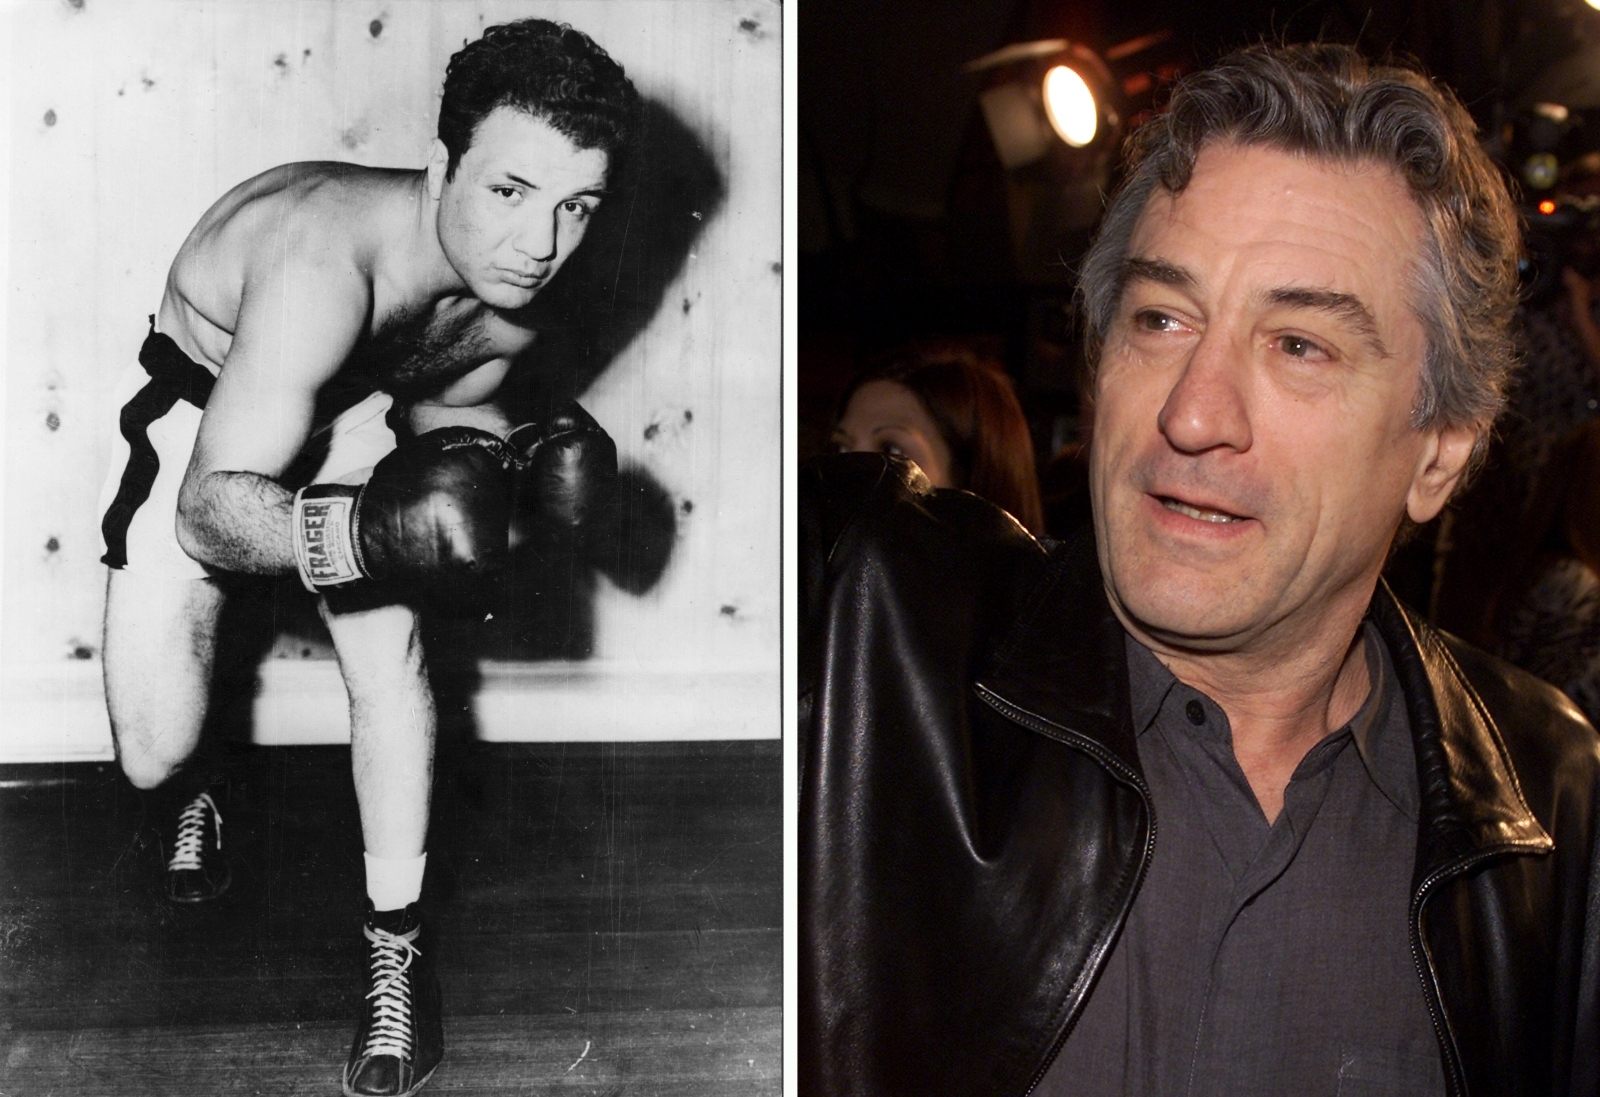 Jake LaMotta, boxer and Raging Bull inspiration, dies at 95